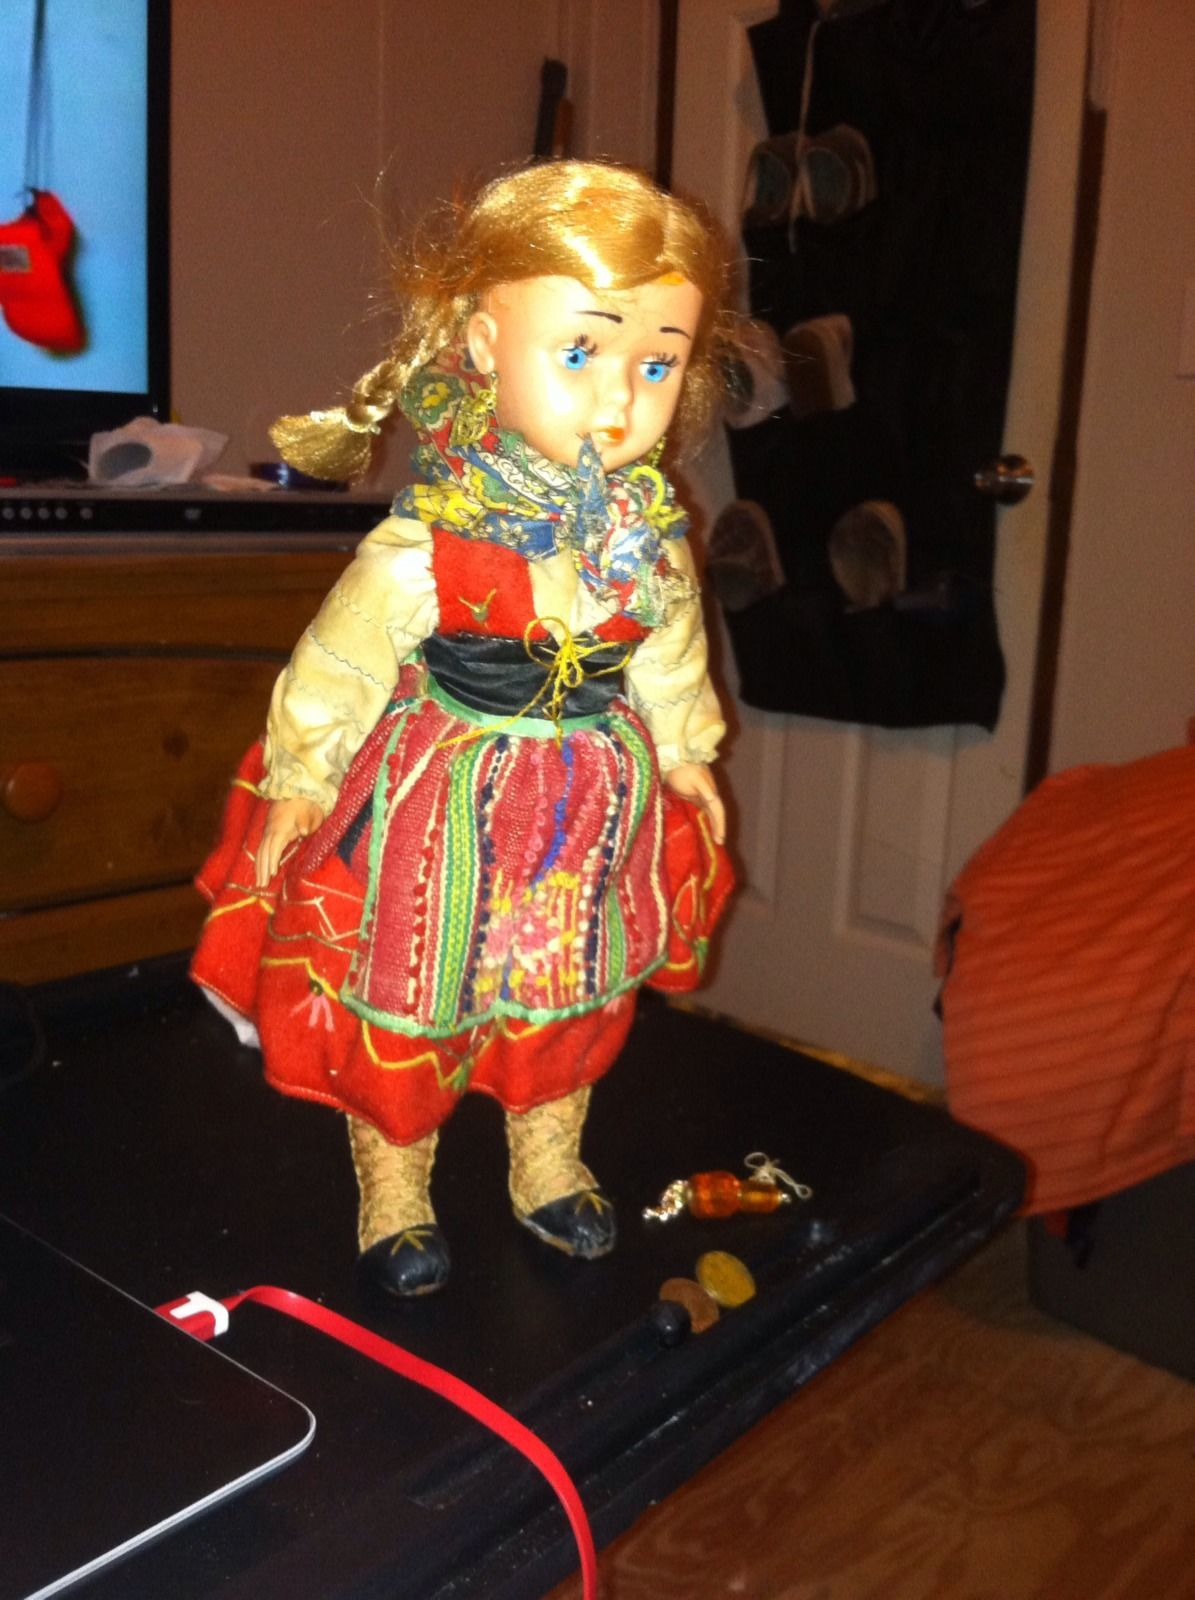 Gypsy wish doll